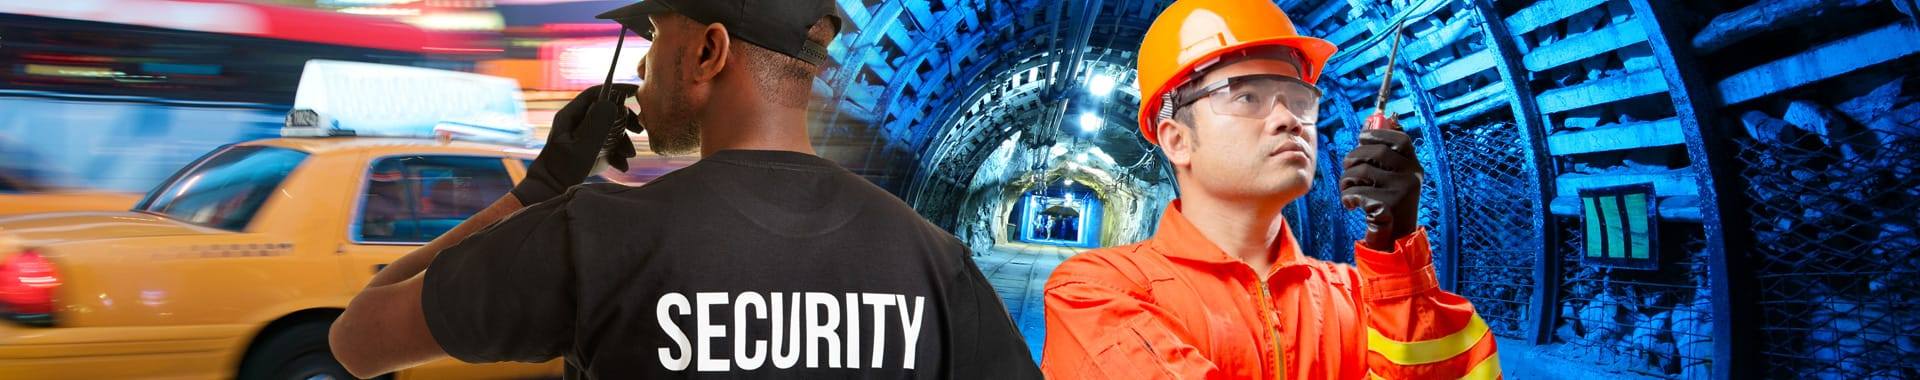 A security guard talking into a radio and a miner in a tunnel listening to a radio, montage conveys the Mining and Public Safety market